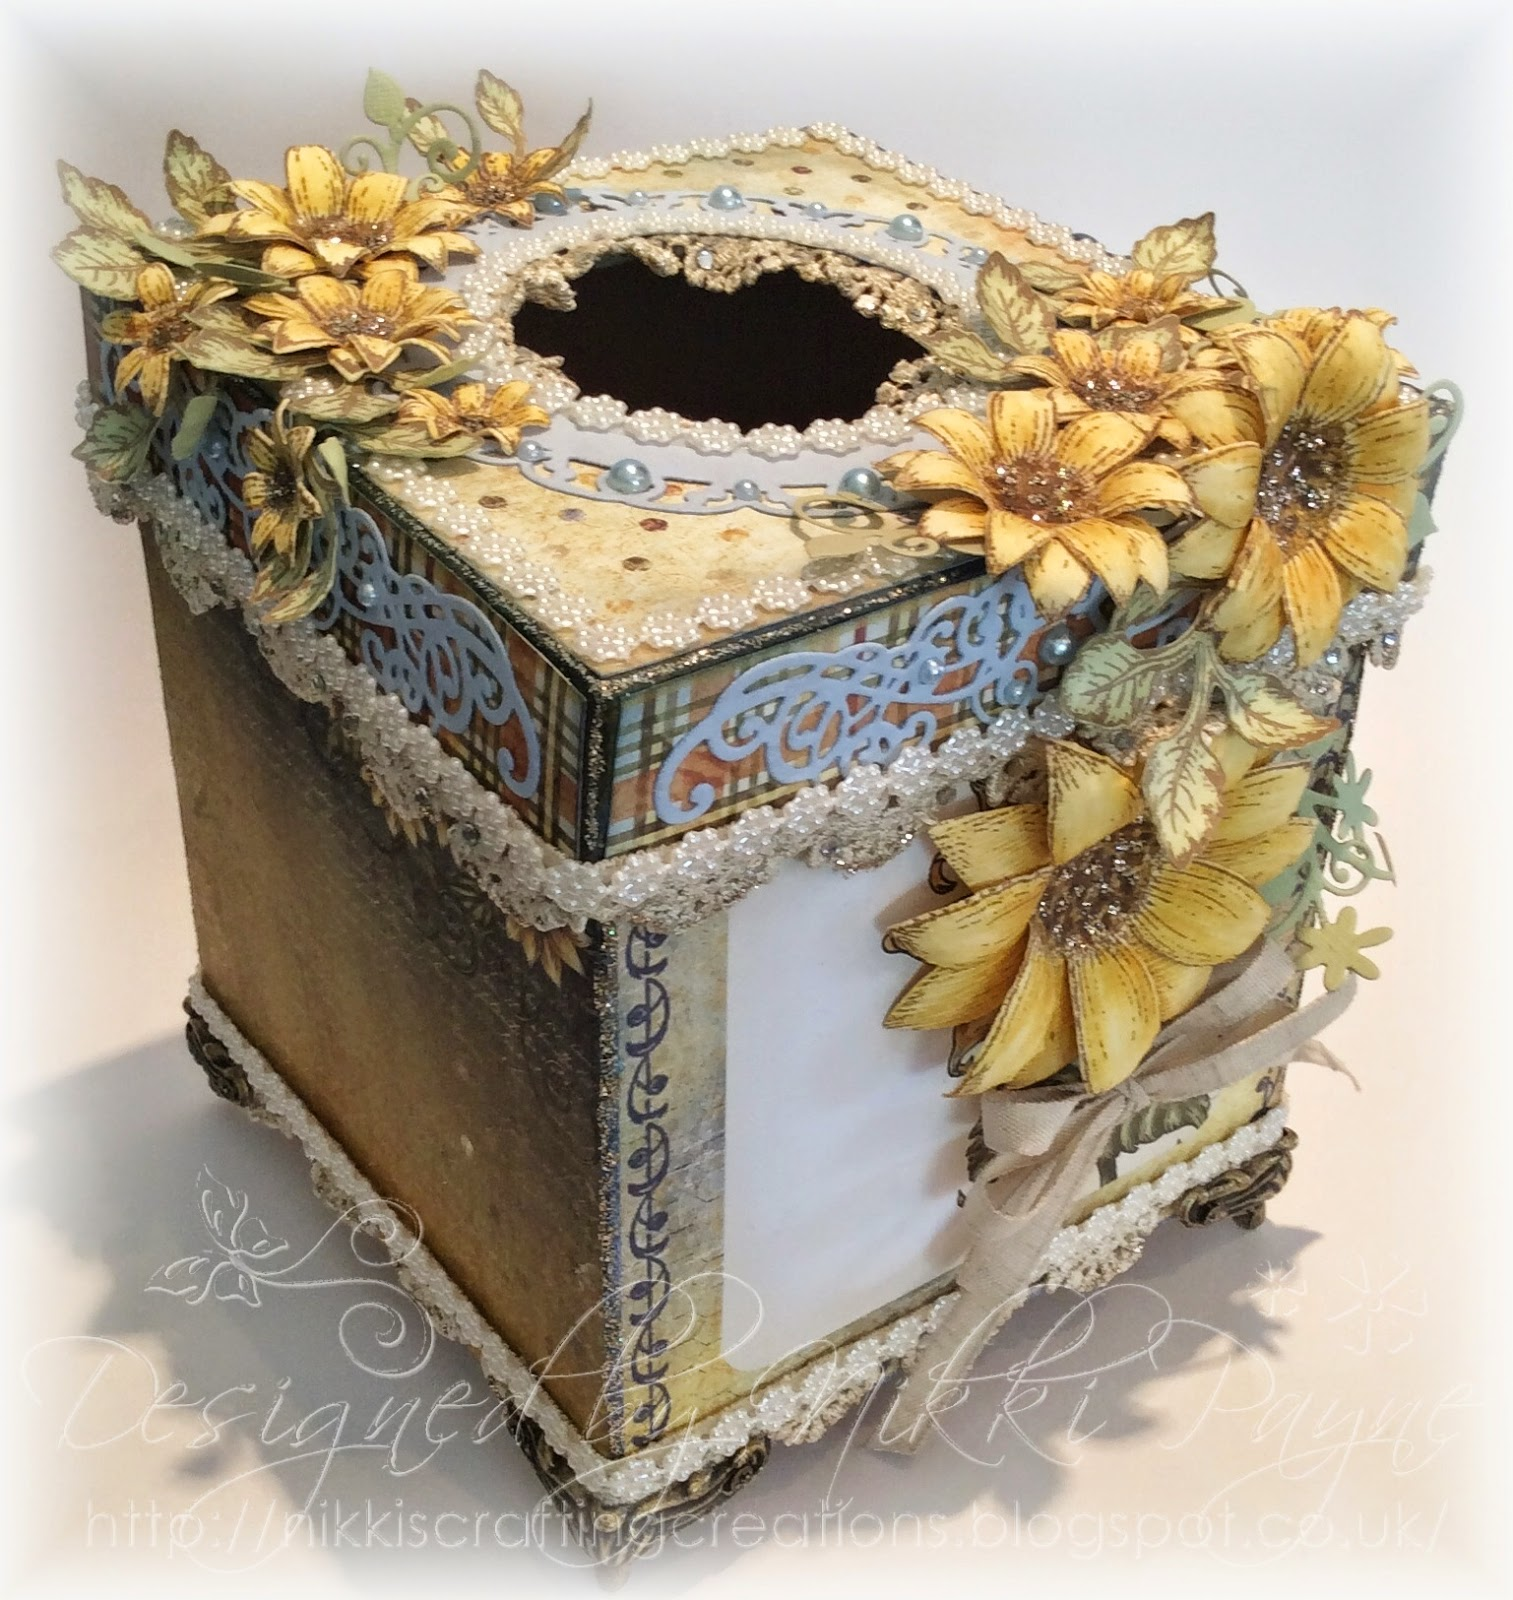 nikki 39 s crafting creations blog candy winner and sunflower tissue box inspiration. Black Bedroom Furniture Sets. Home Design Ideas